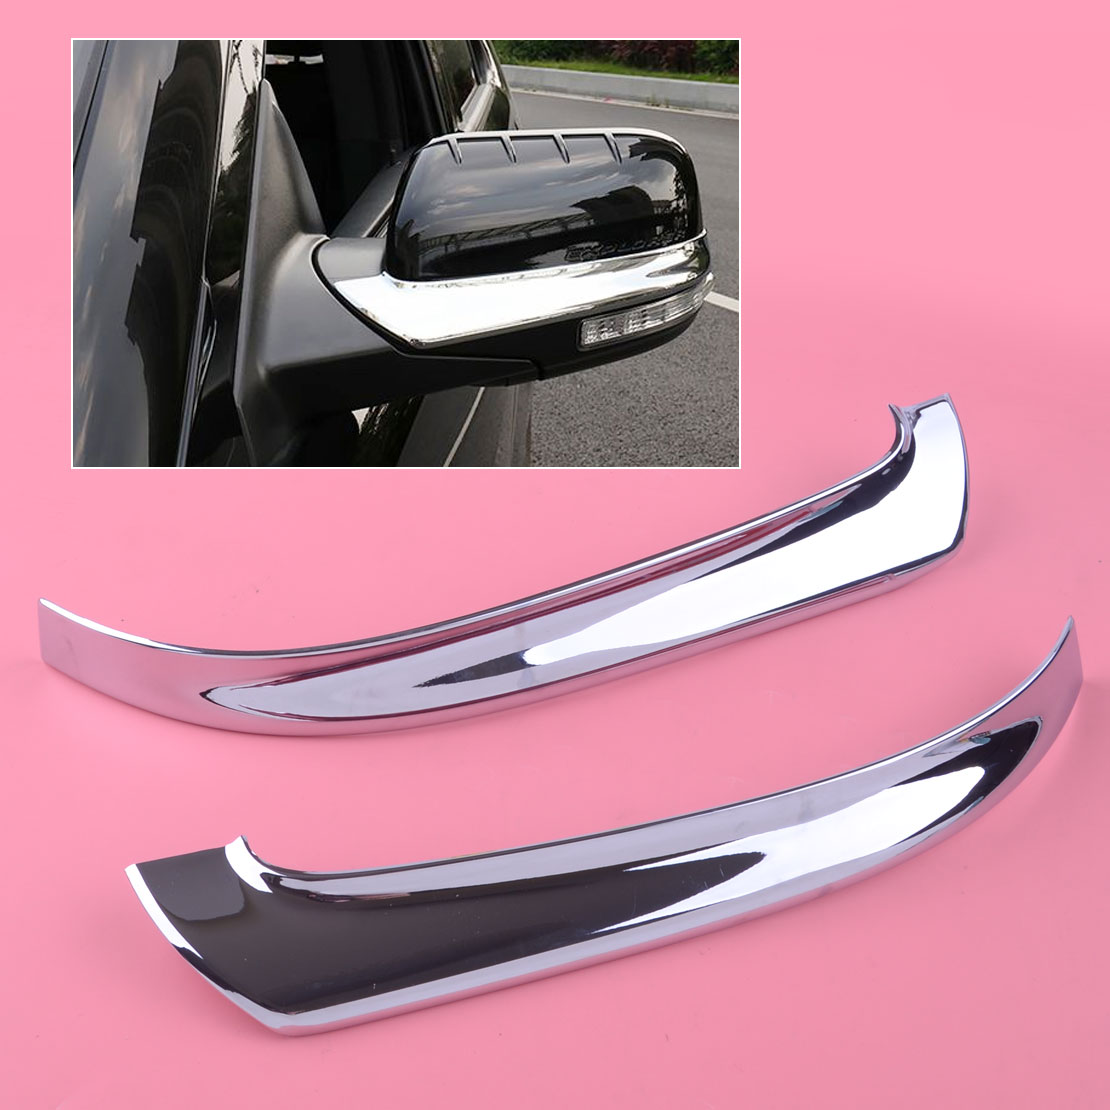 DWCX 2pcs Silver Left Right Chrome Plated Rearview Side <font><b>Mirror</b></font> Cover Strip Trim ABS Fit For <font><b>Ford</b></font> <font><b>Explorer</b></font> 2016 2017 2018 2019 image